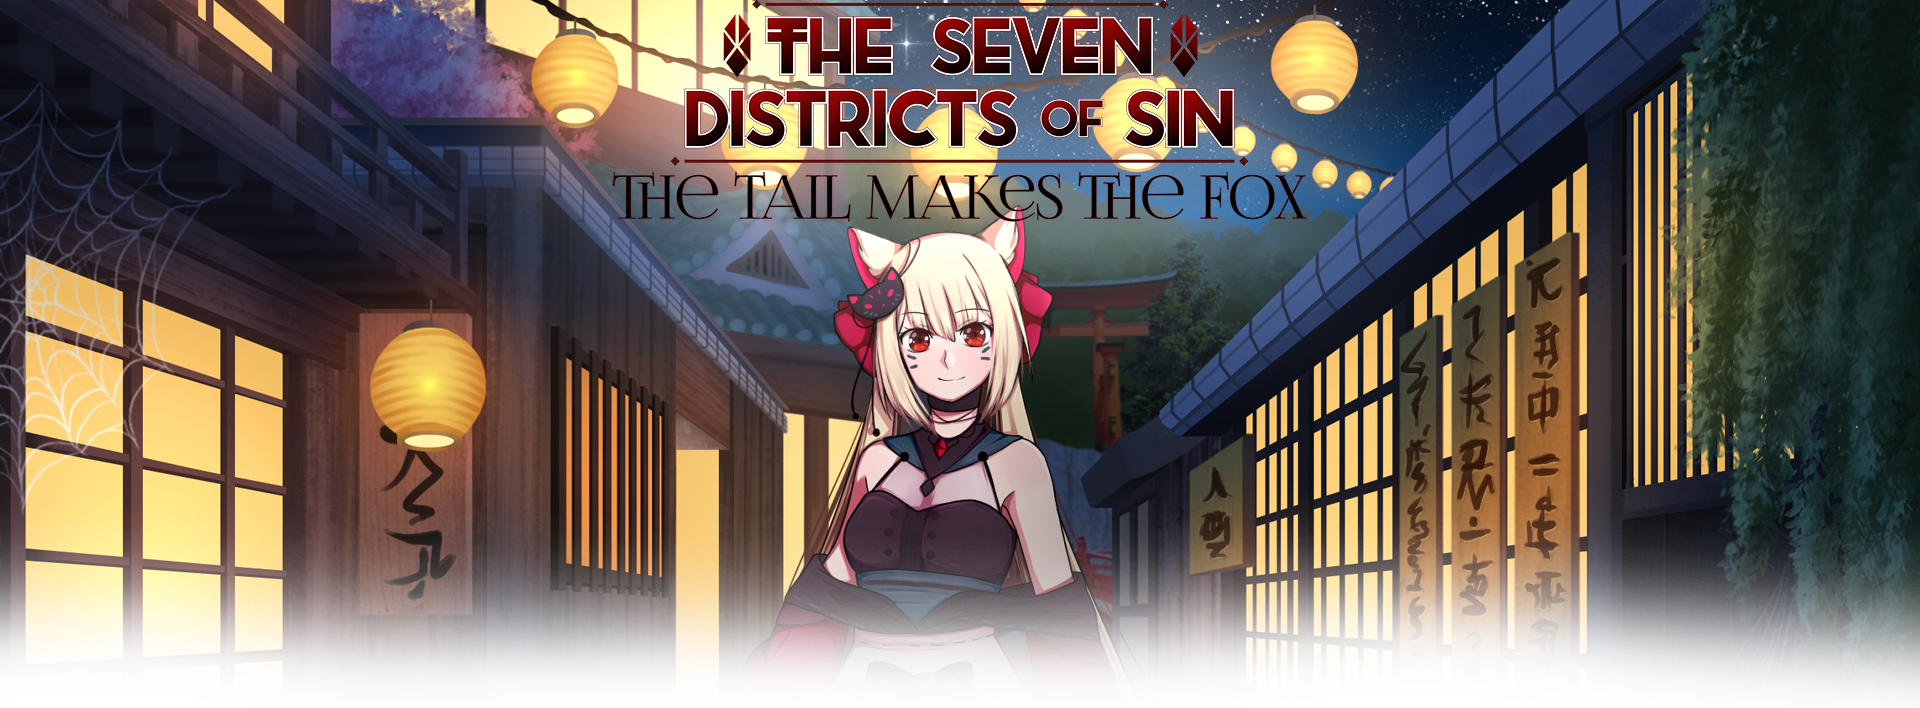 [Standalone] The Tail Makes the Fox - Episode 1 Deluxe Goodies